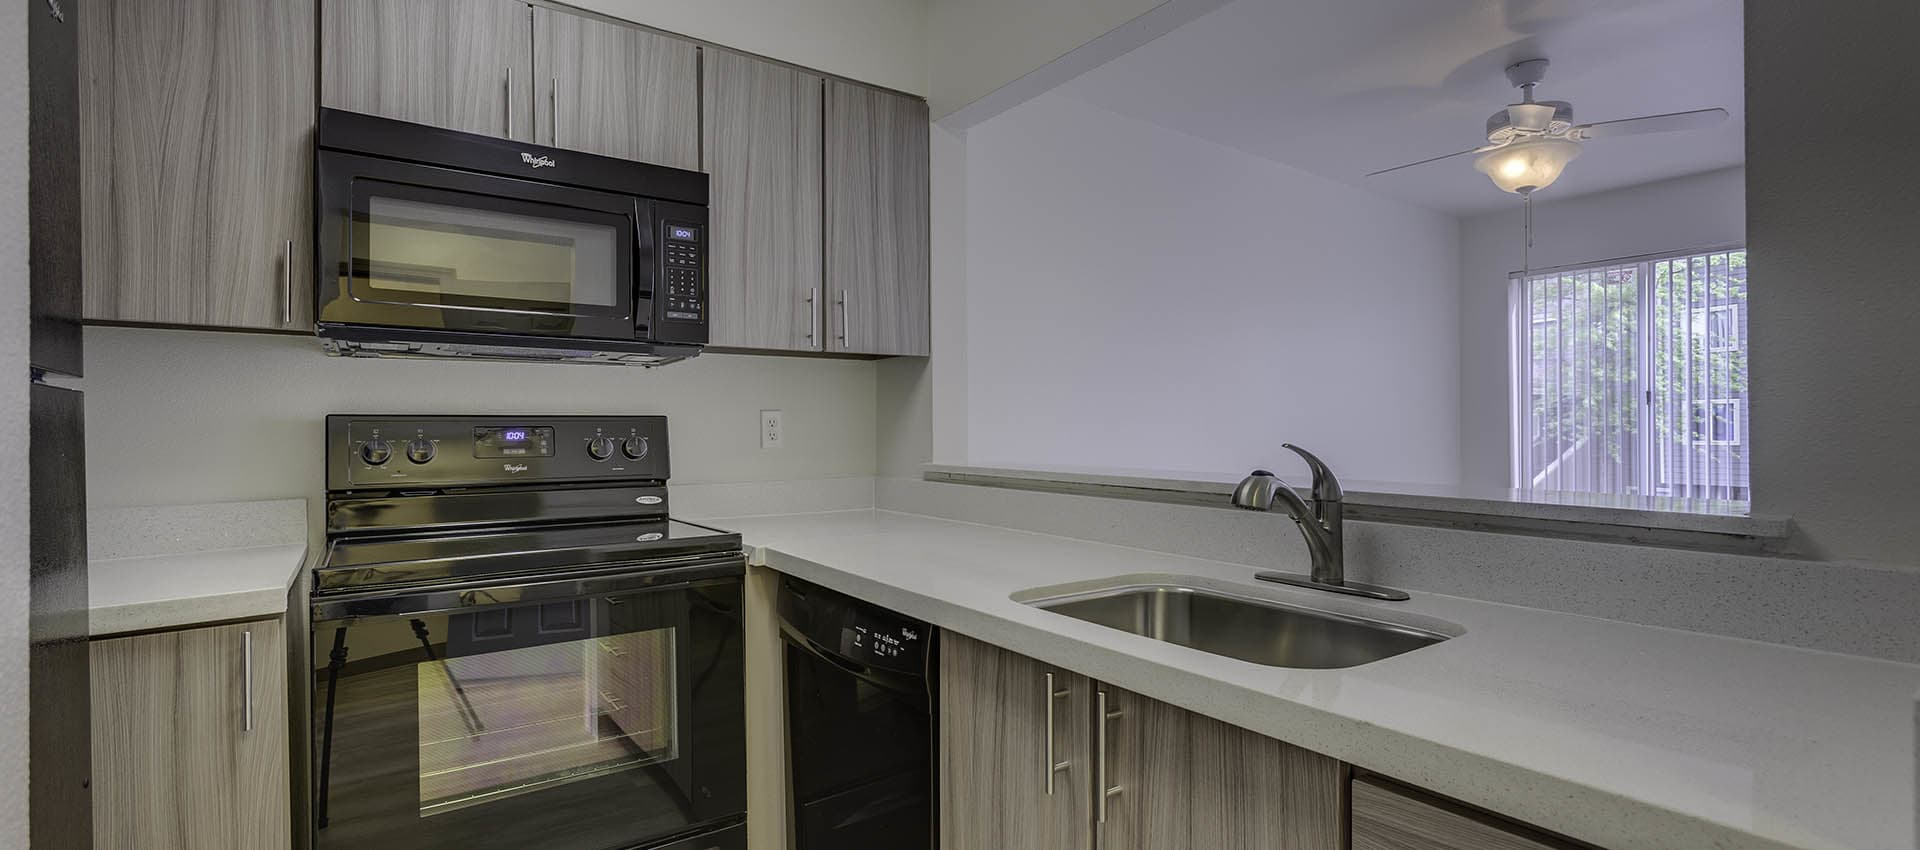 Upgraded Kitchen With Black Appliances at Waterhouse Place in Beaverton, OR